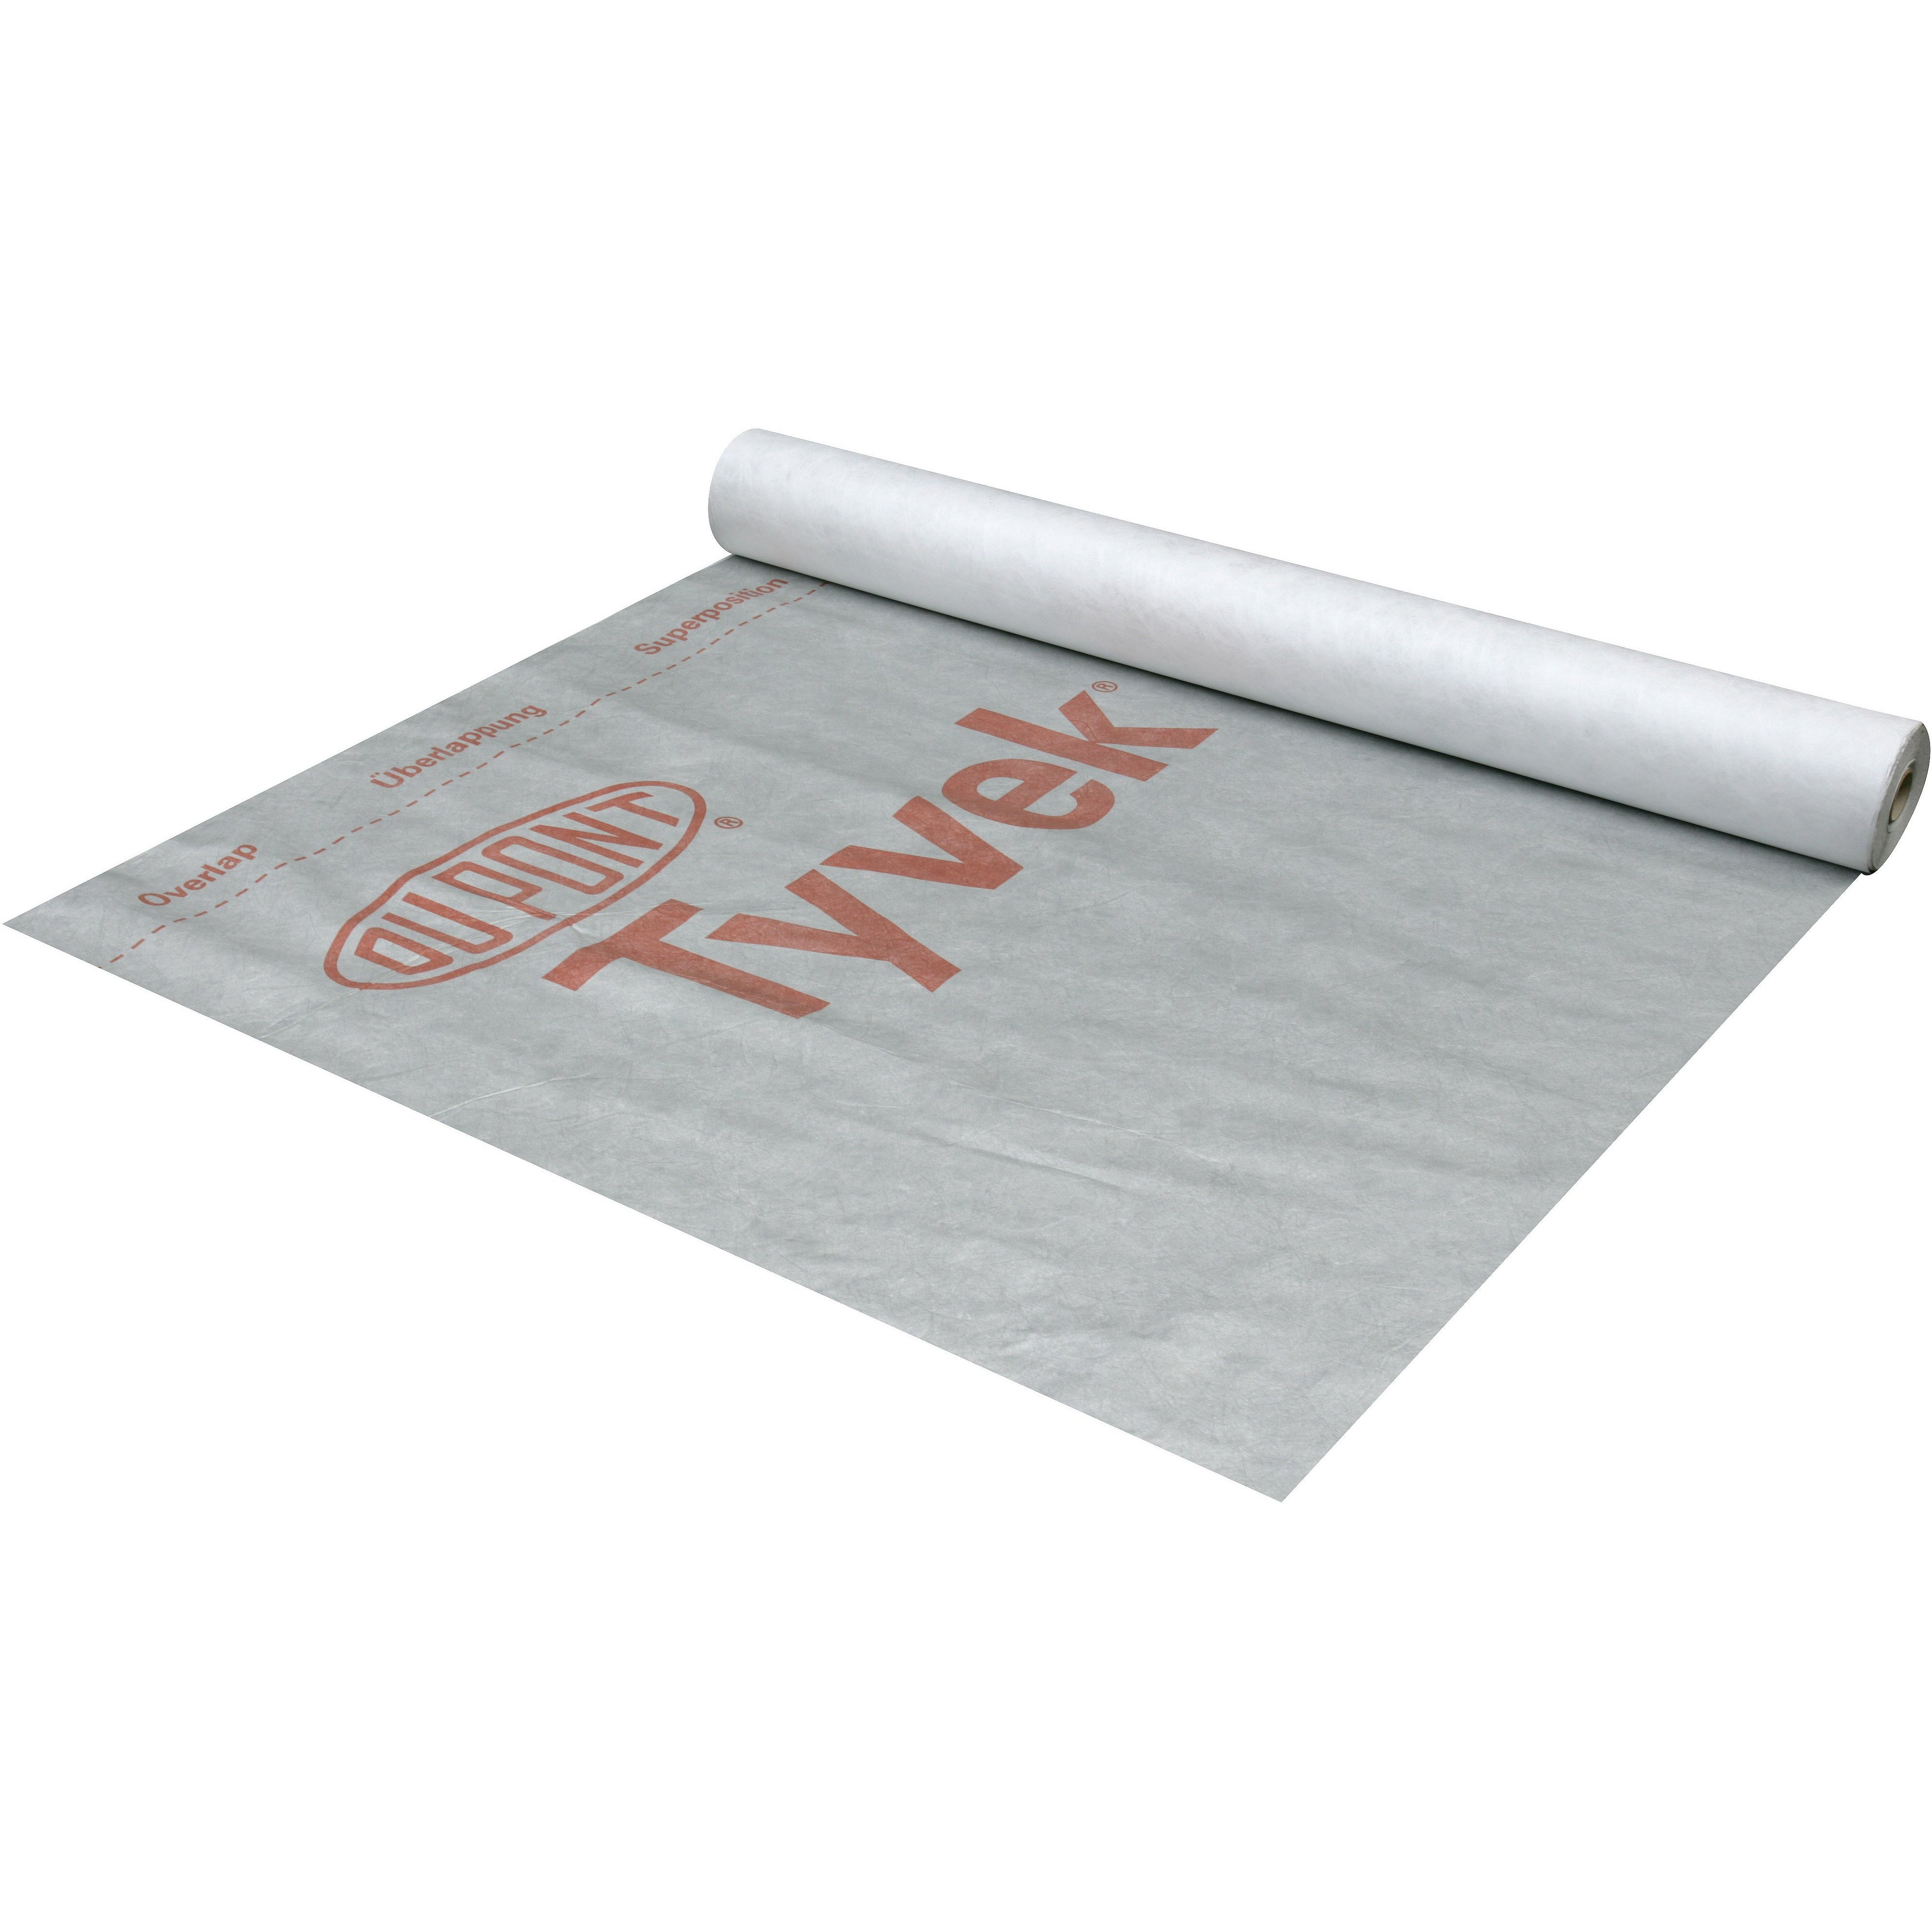 Tyvek Supro Vapour Permeable Breather Felt 1 5m X 50m 75m2 Roll Roofing Outlet